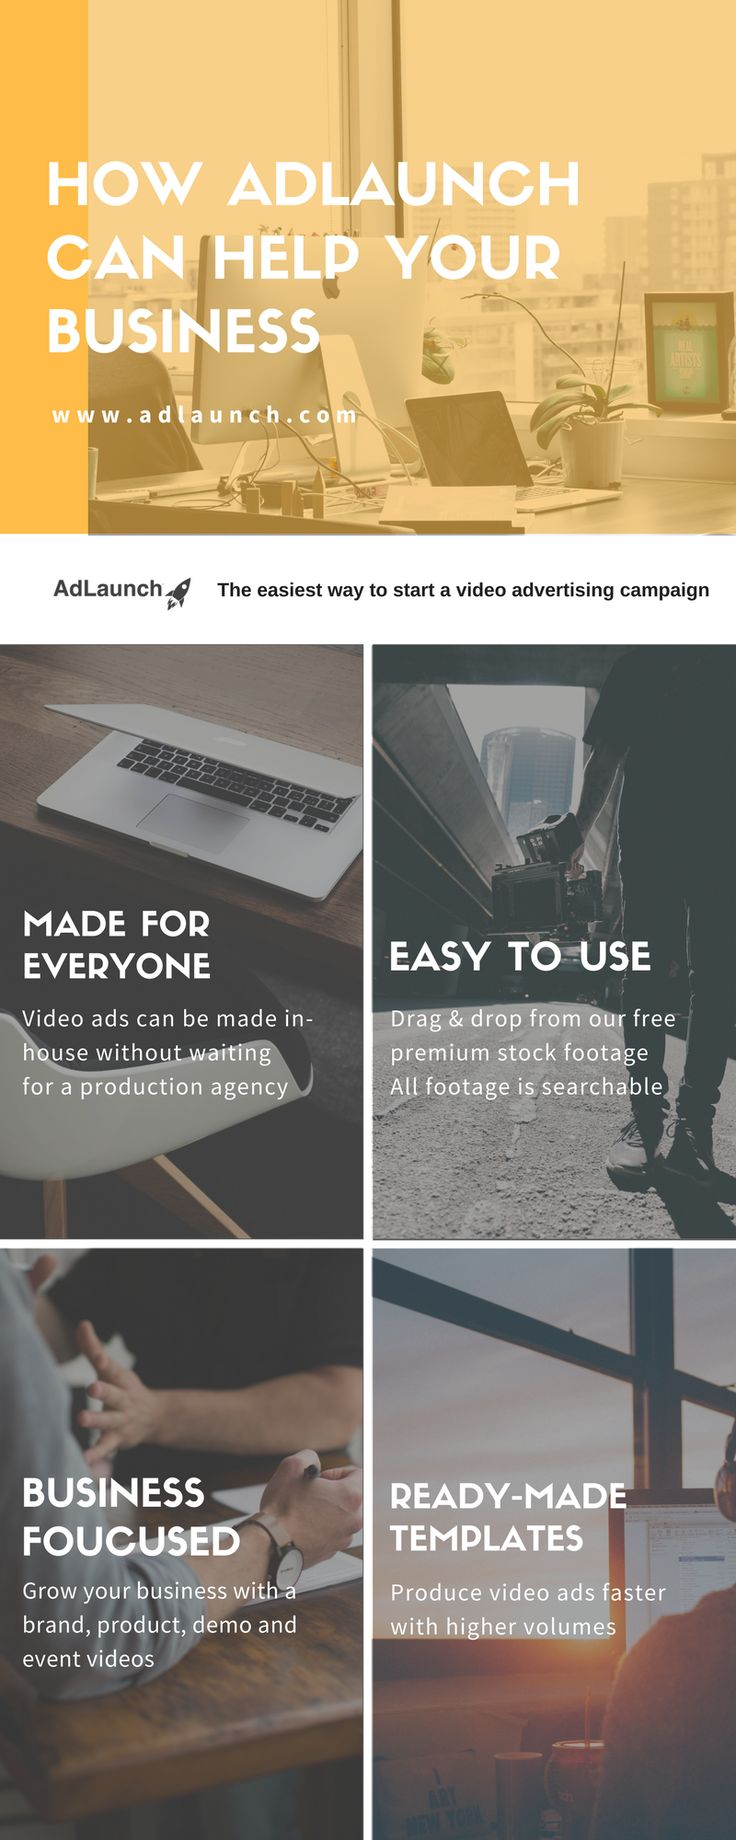 "Finding low-cost solutions for making ""unlimited"" video ads!  We believe AdLaunch is the right solution for your business.  Sign up for FREE at www.adlaunch.com"